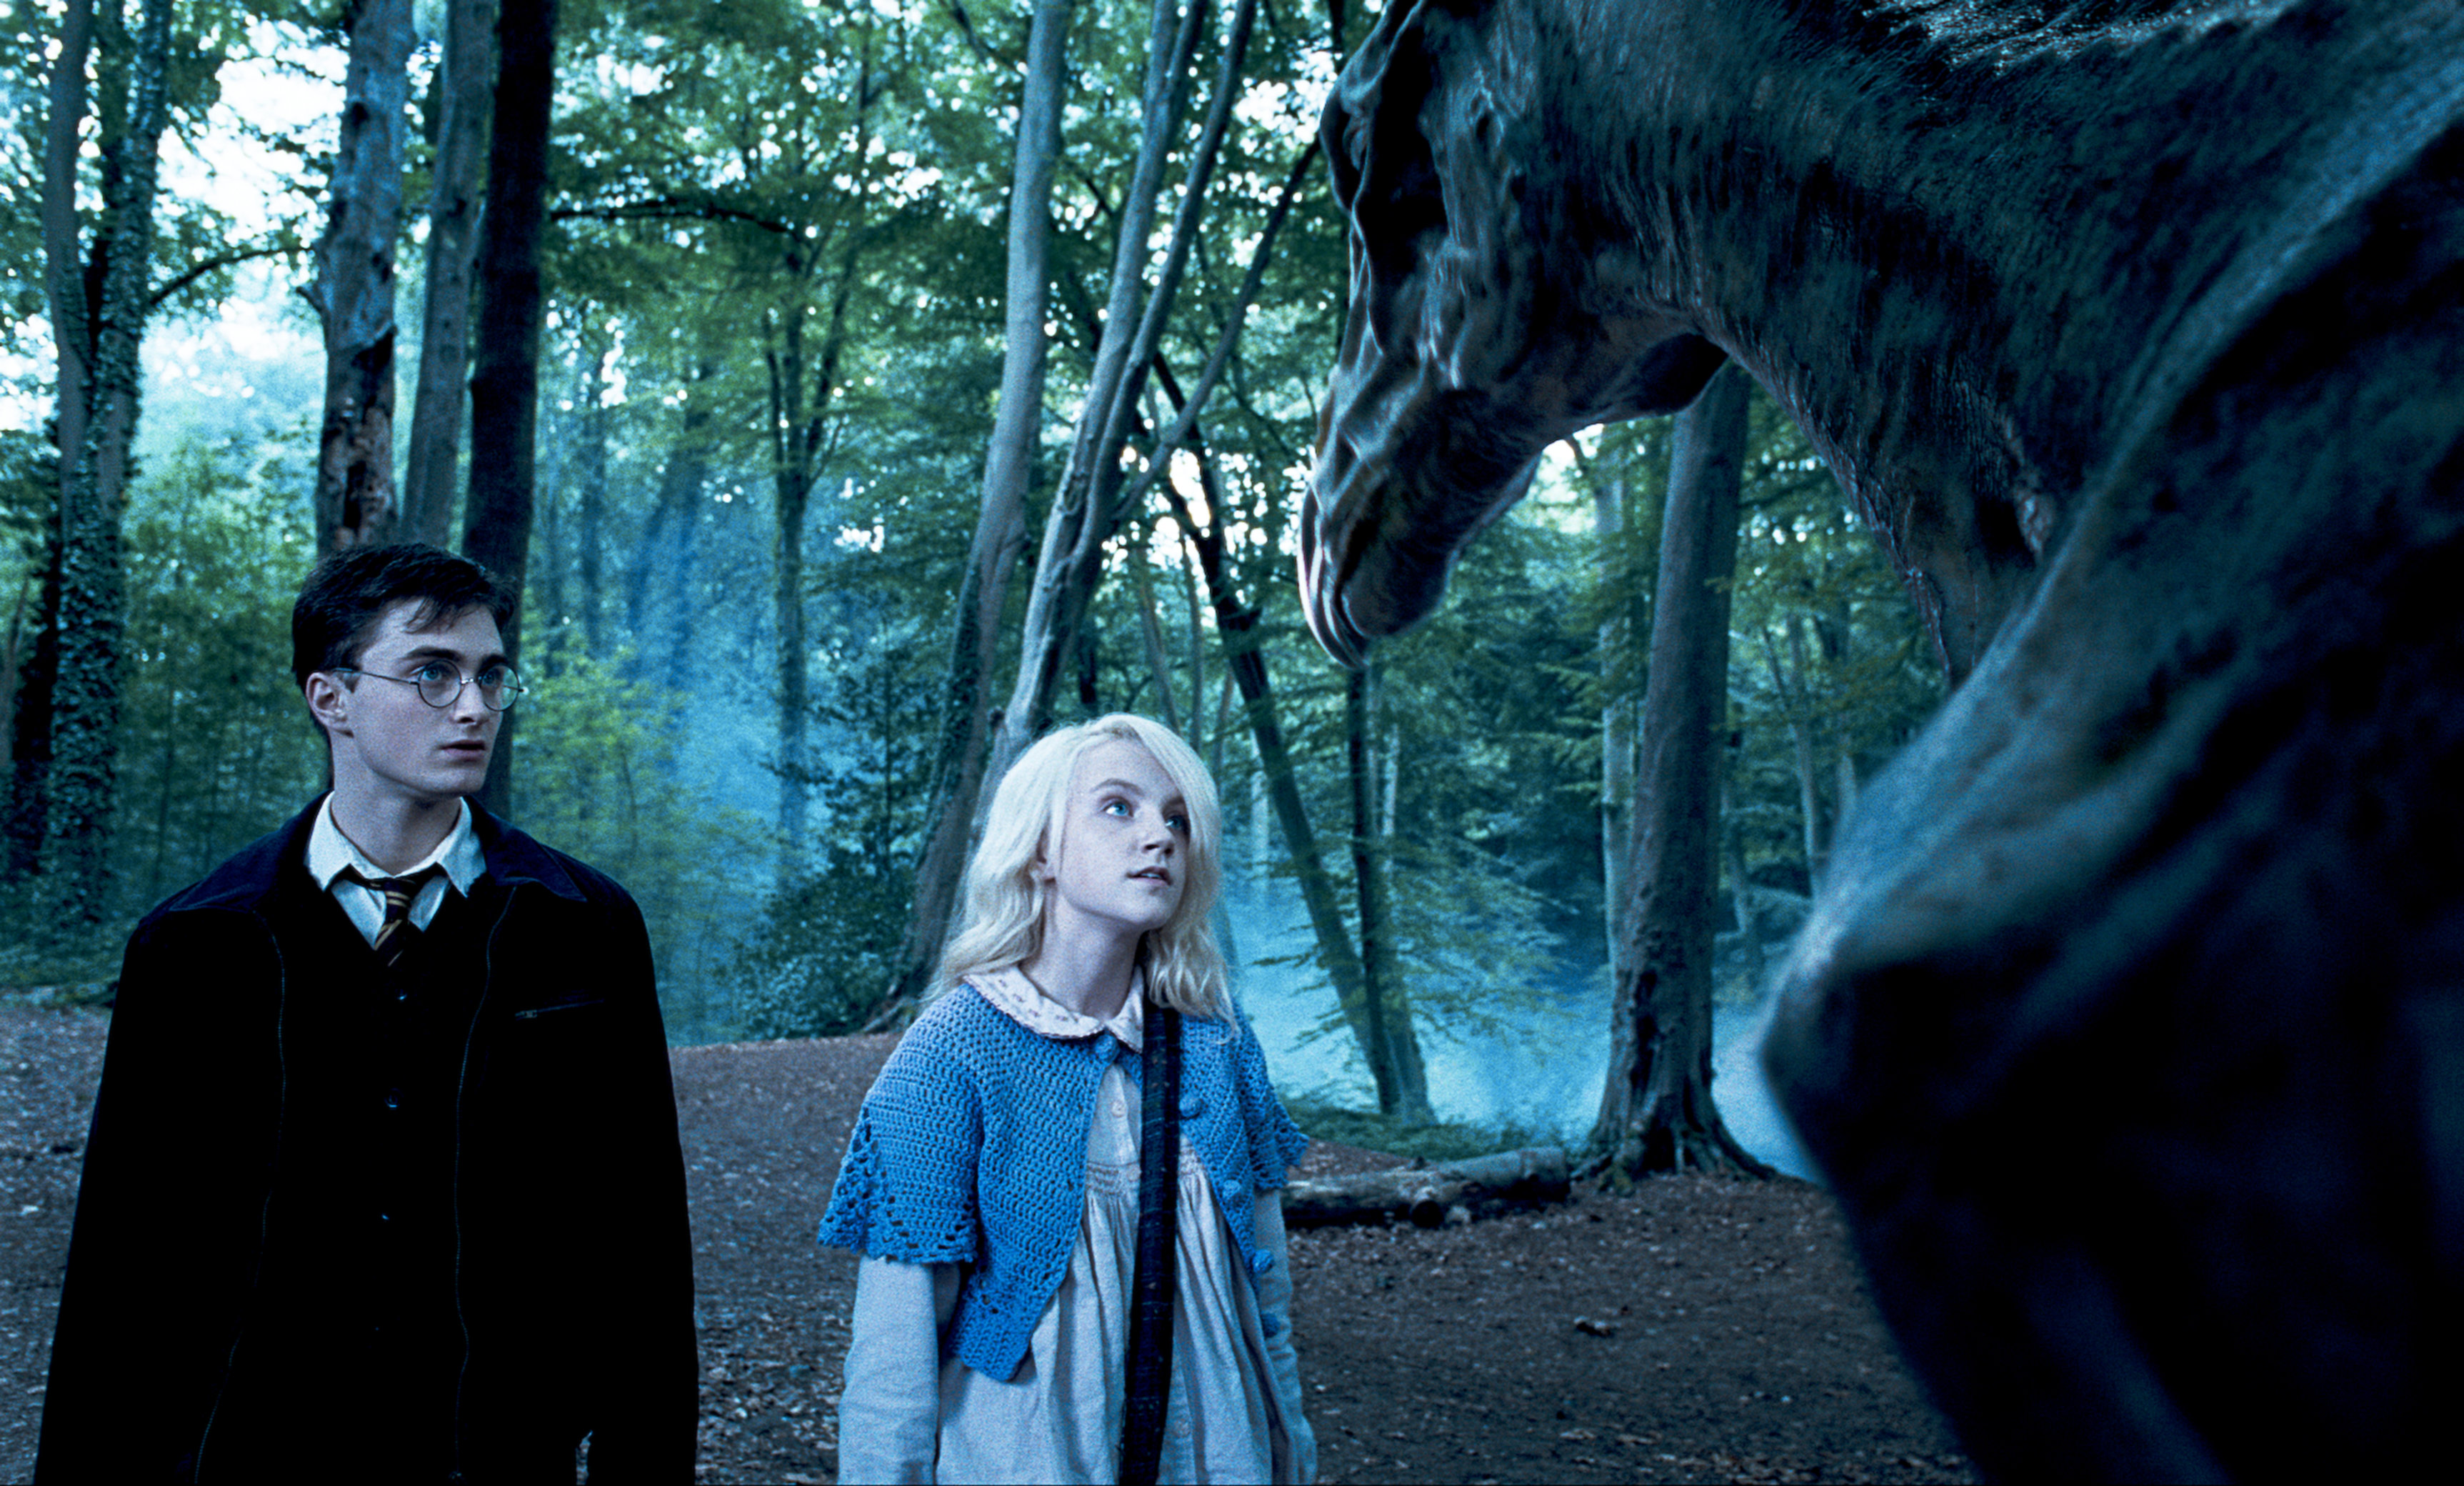 Harry and Luna look at Thestrals in the forest in a still from the Order of the Phoenix.